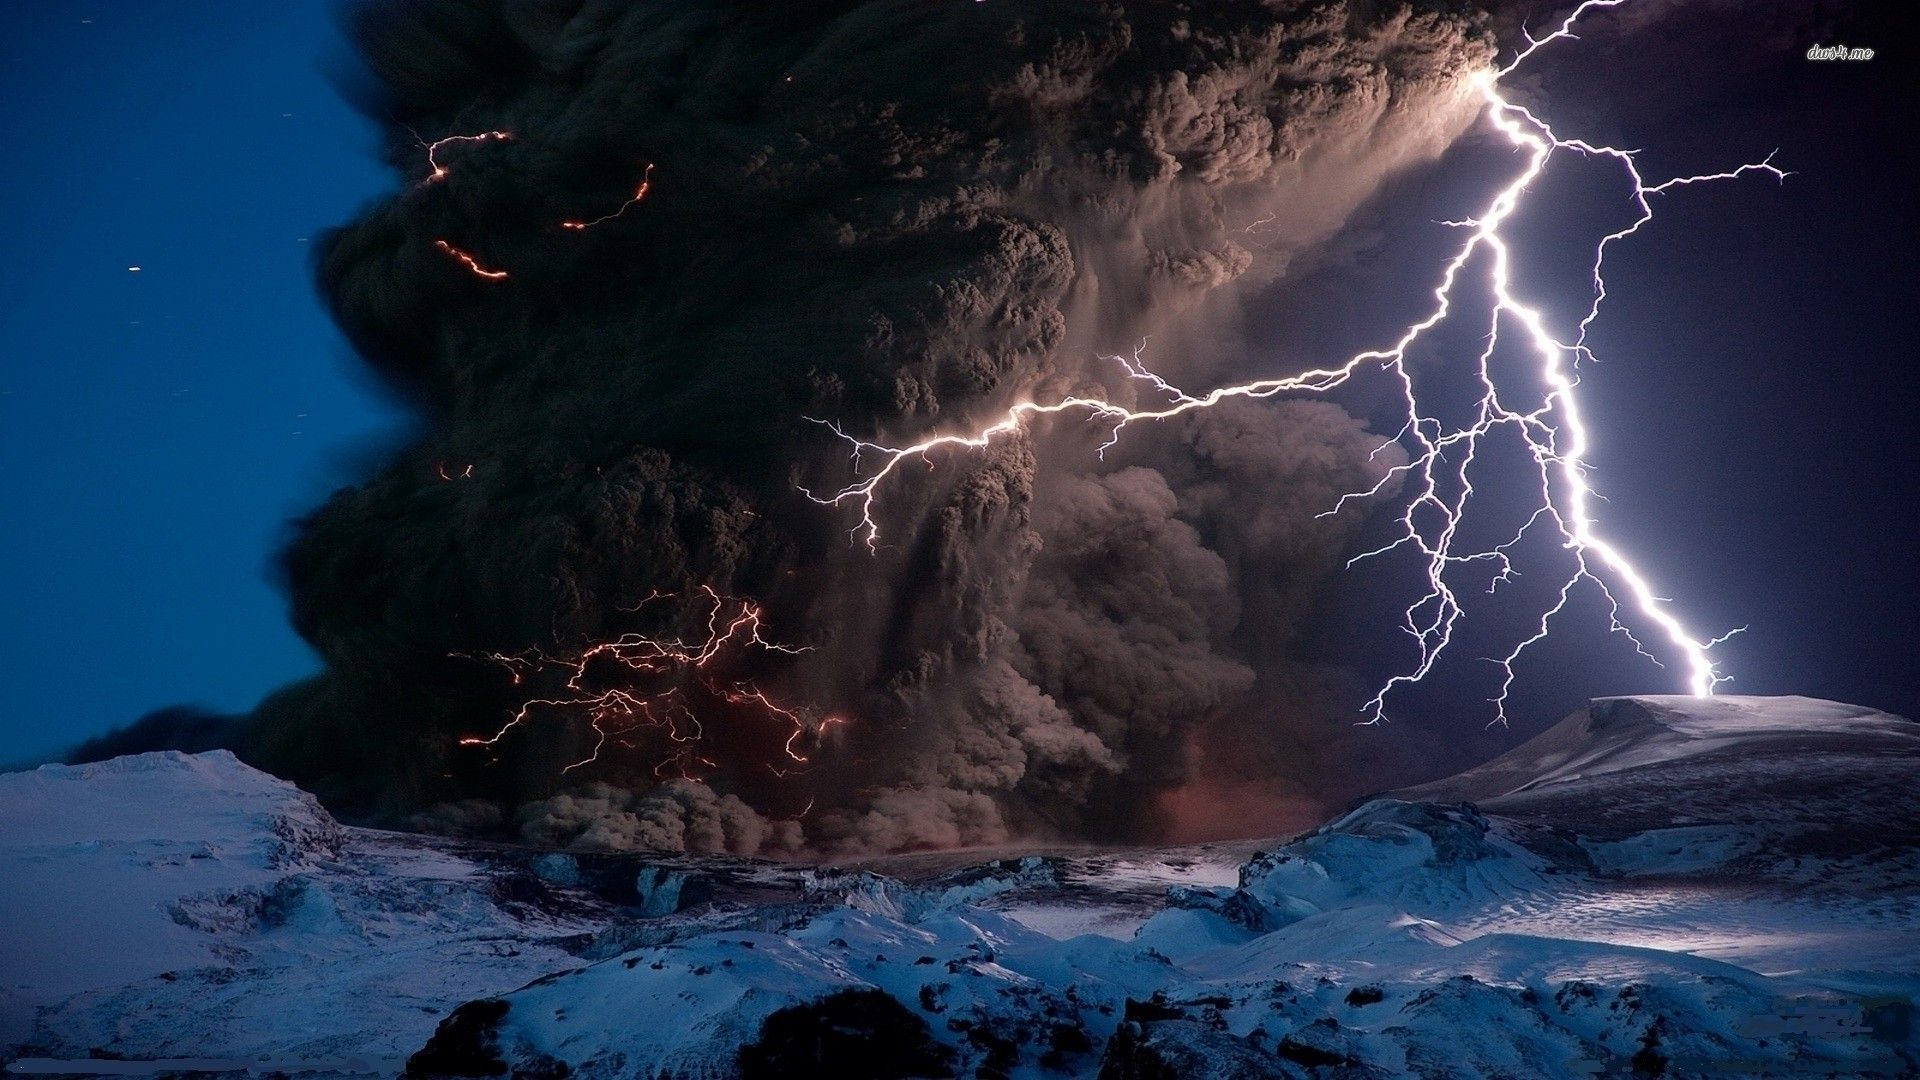 apocalyptic storm over the volcano nature hd desktop wallpaper lightning wallpaper volcano wallpaper nature no